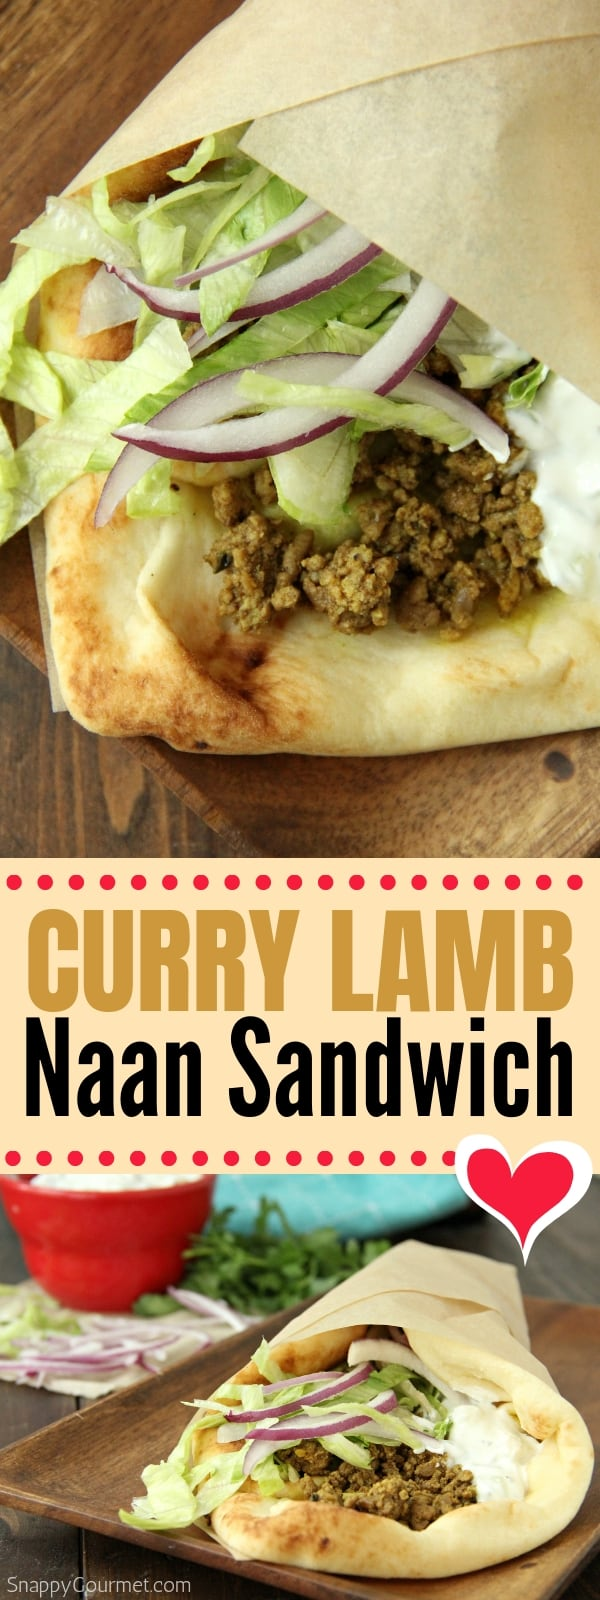 Curry Lamb Naan Sandwich collage